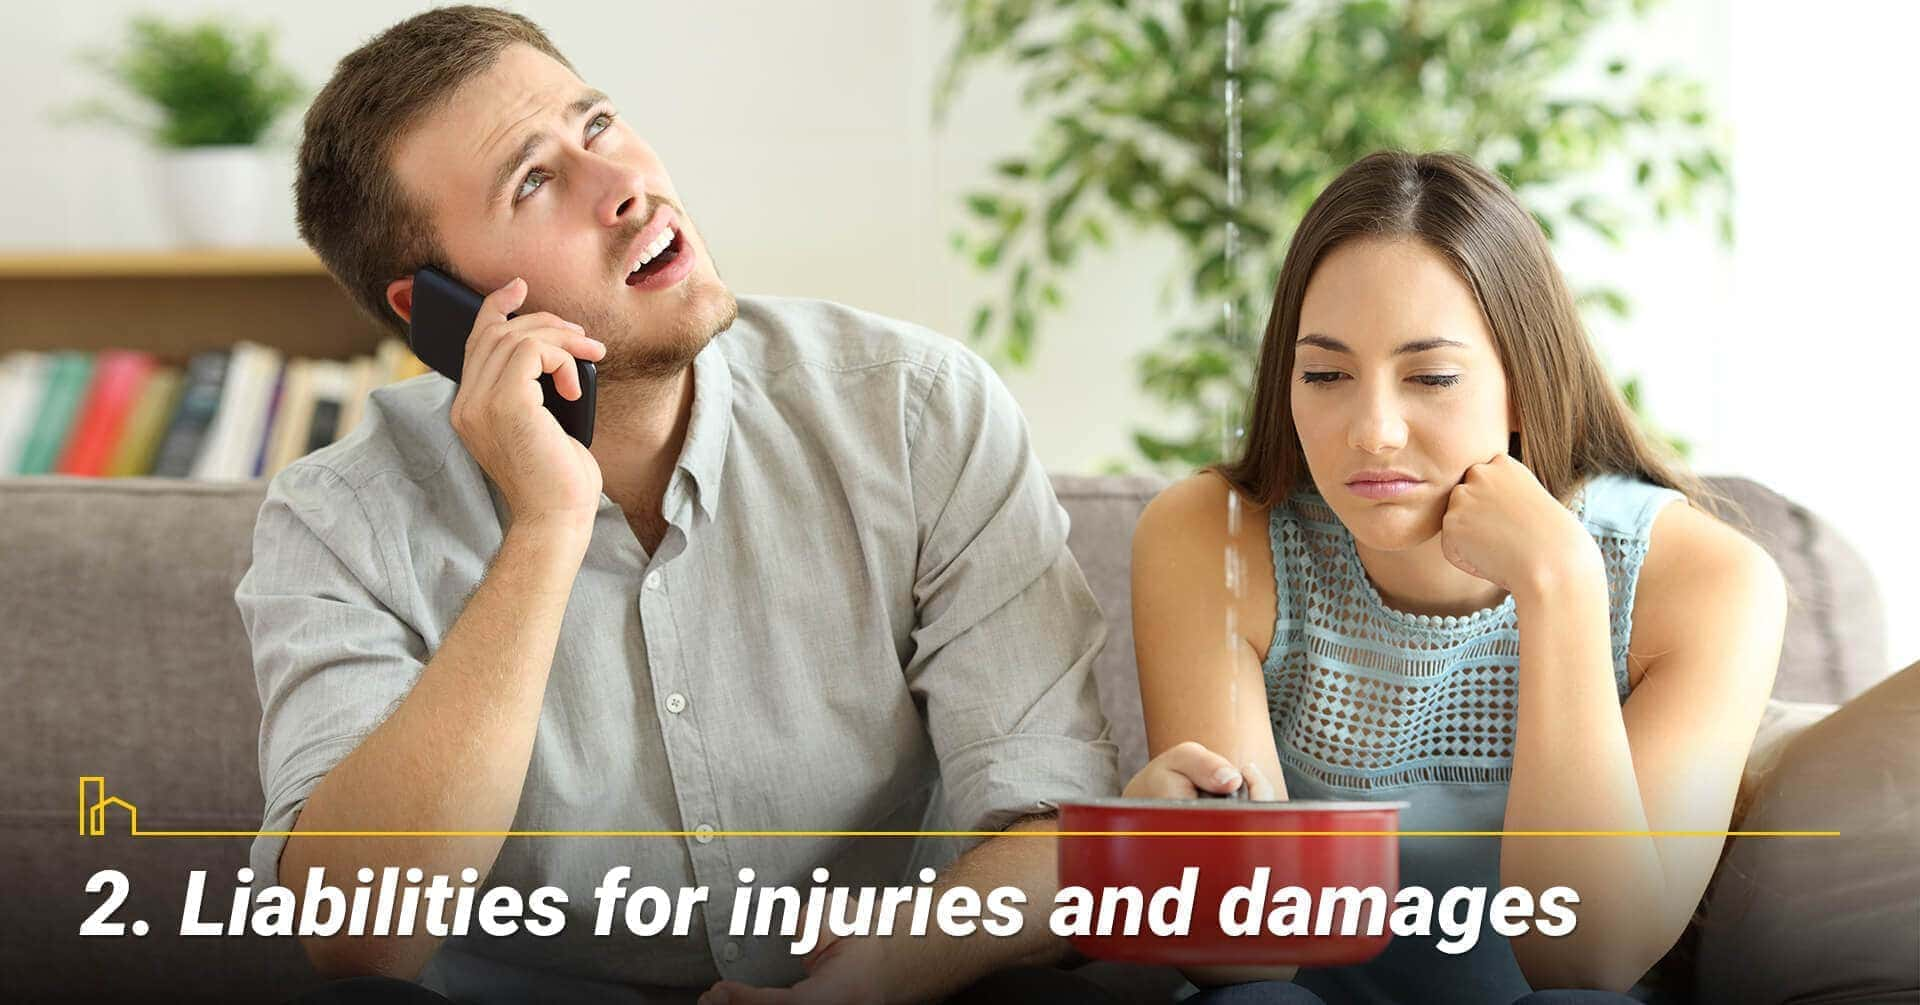 Liabilities for injuries and damages, accountable for damages